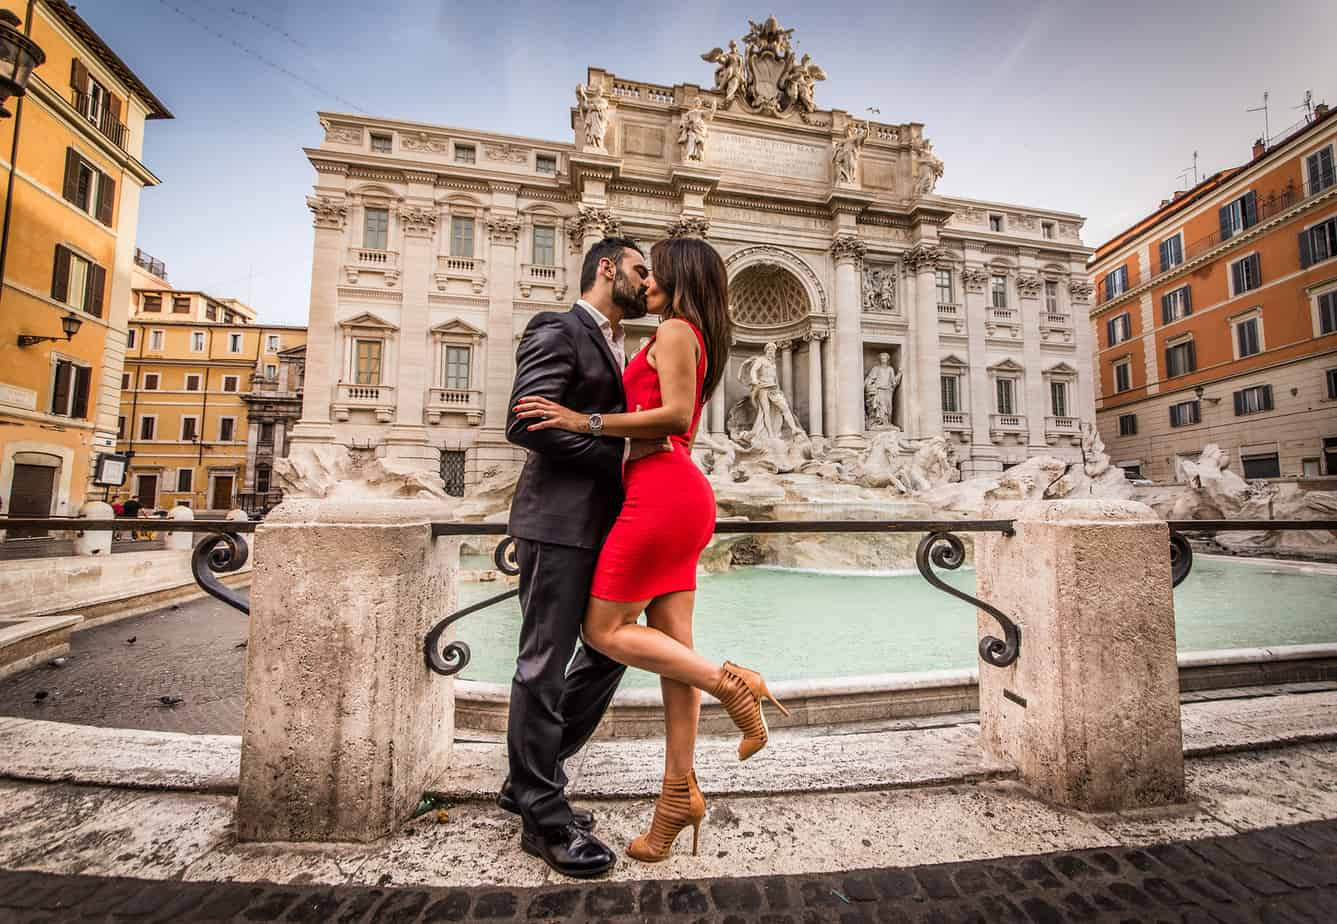 most romantic places in europe - couple kissing in front on rome's trevi fountain